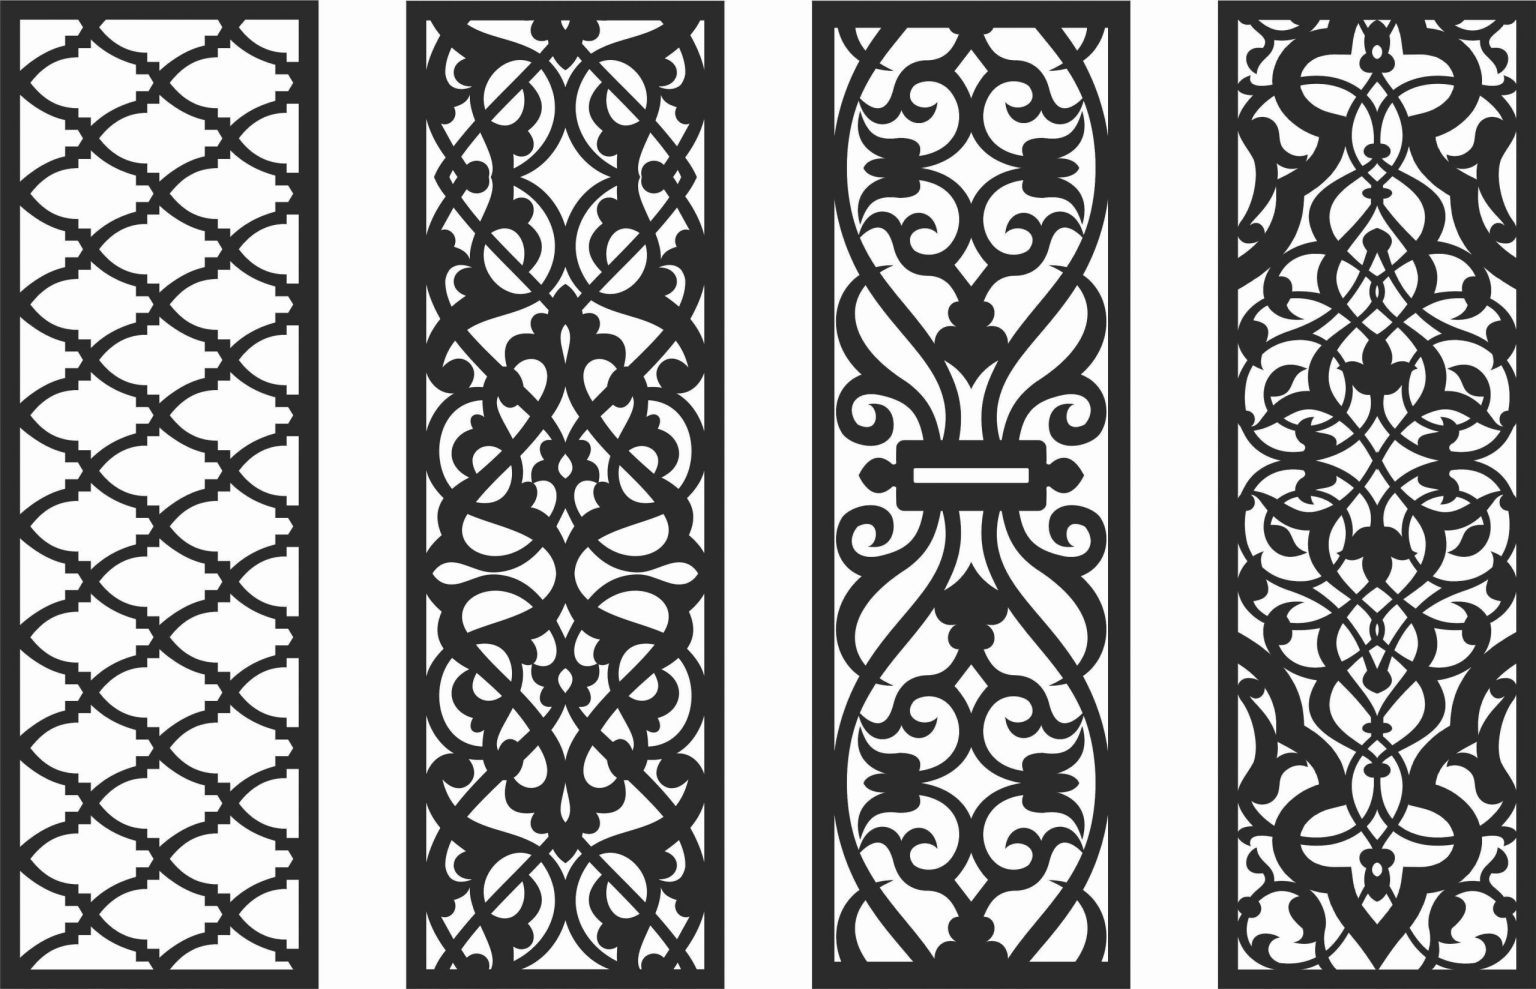 Decorative Screen Patterns For Laser Cutting 127 Free DXF File